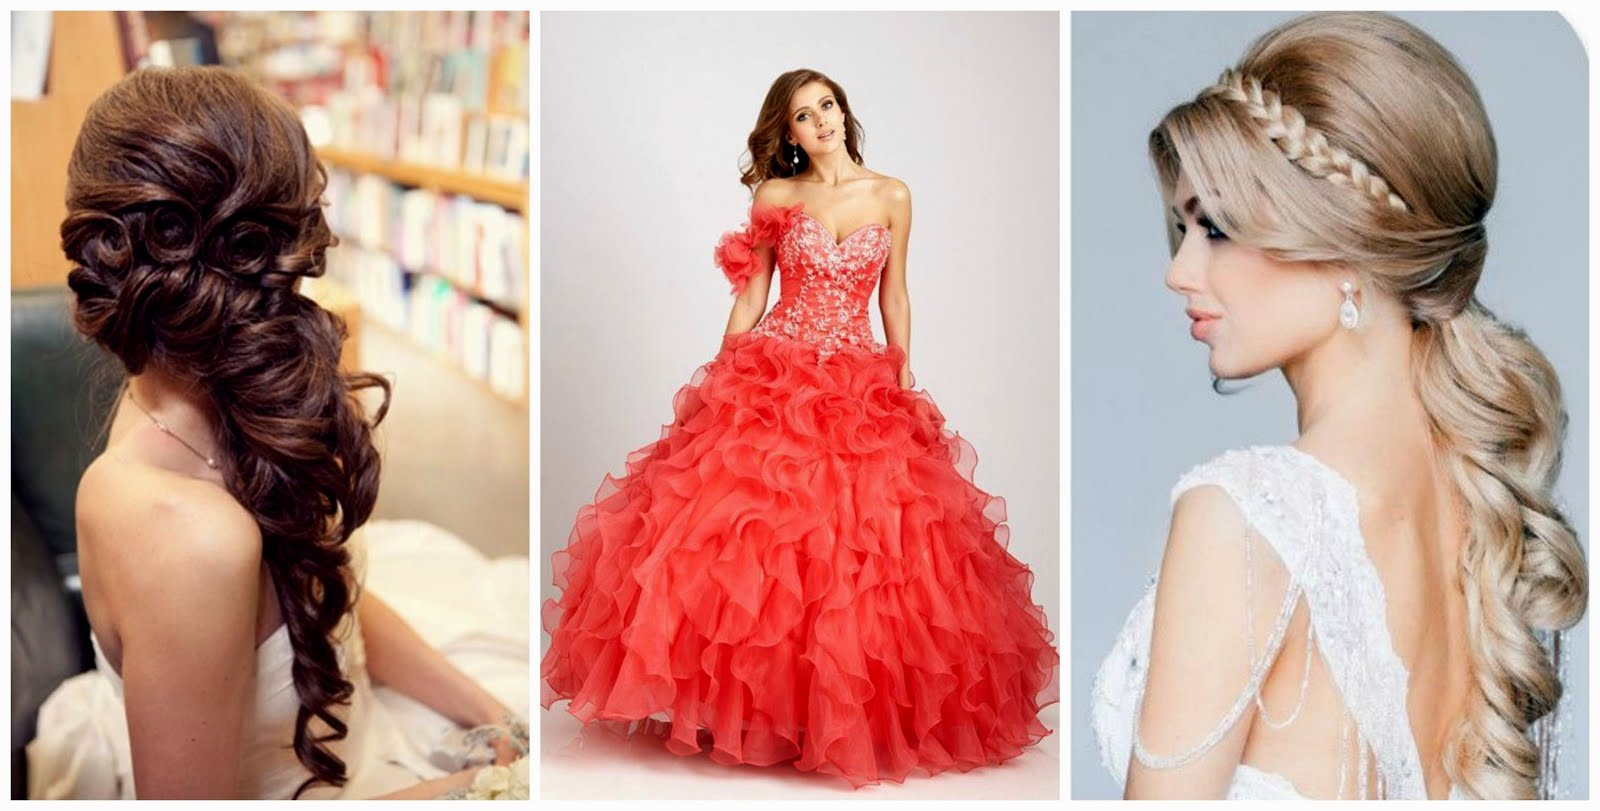 Hairstyles For A Quinceanera 25 Quinceanera Hairstyles For Girls Hairstylo